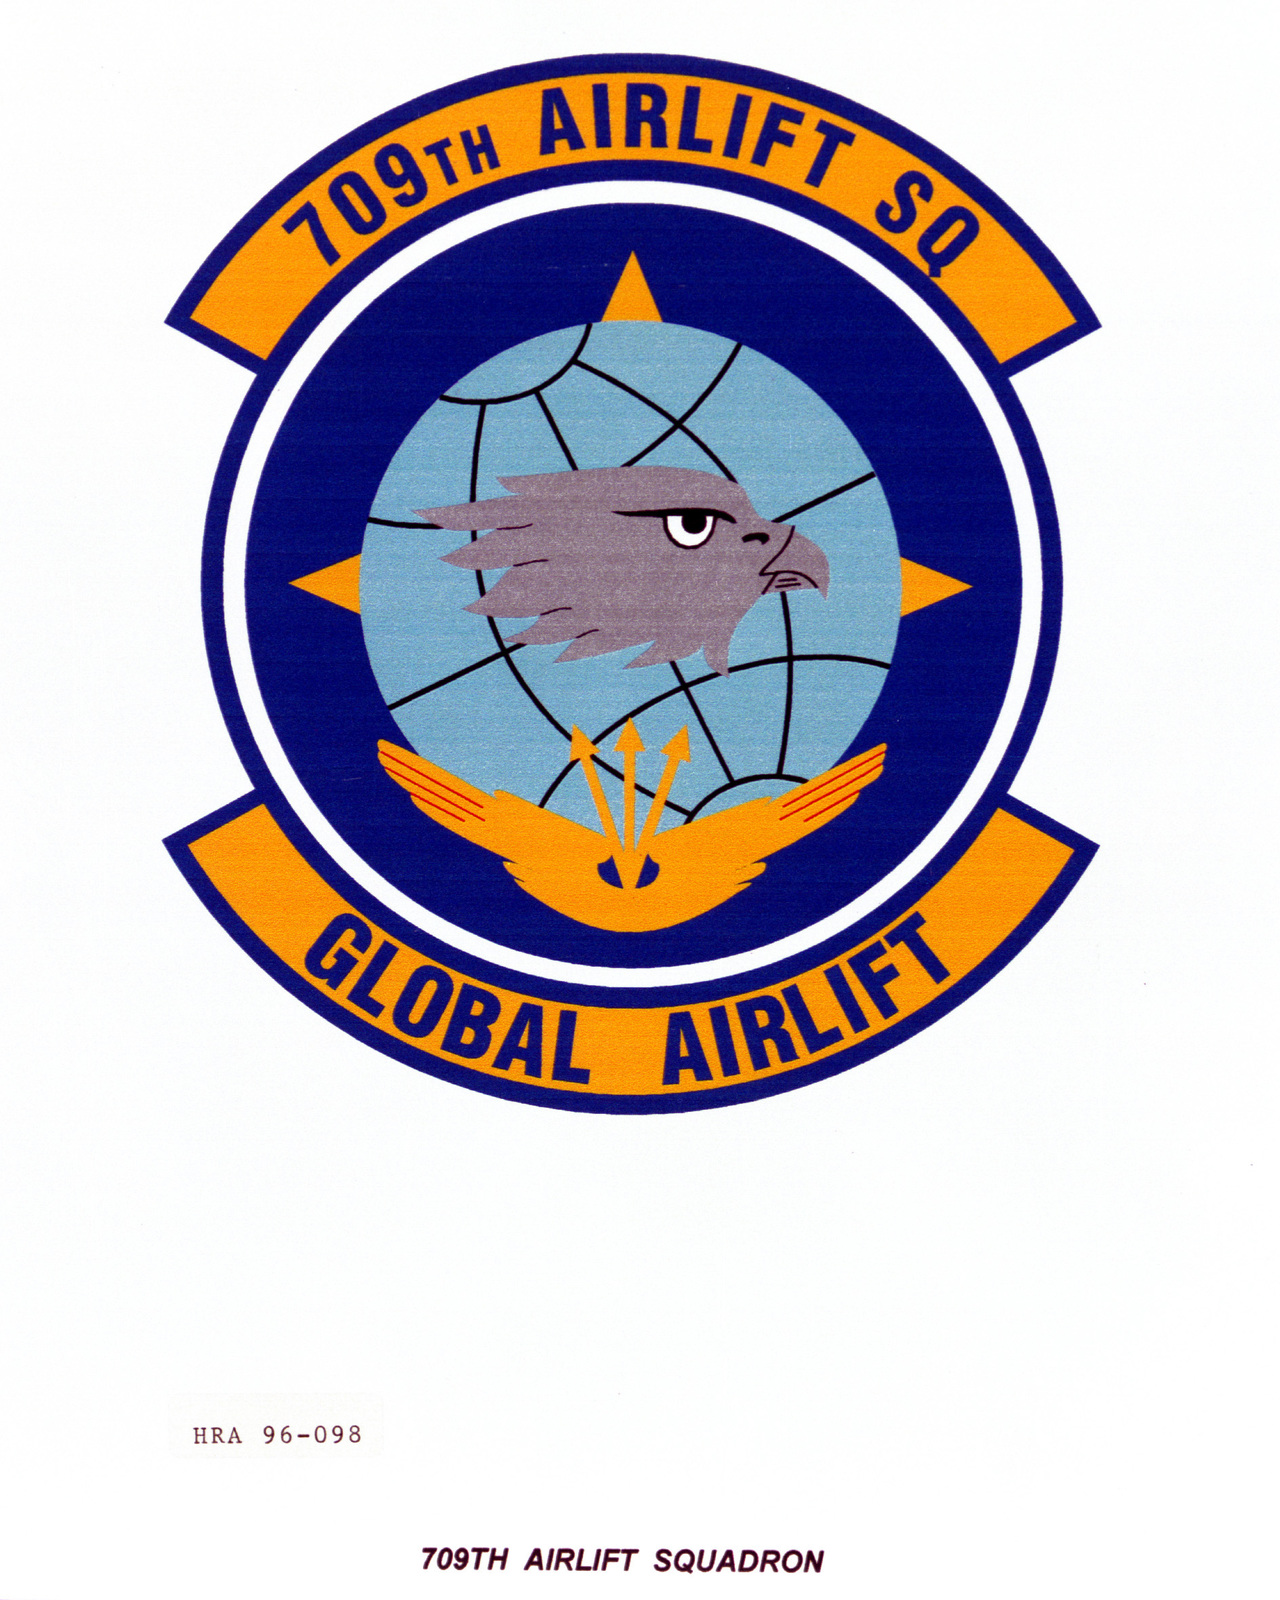 Air Force Organizational Emblem. 709th Airlift Squadron Exact Date Shot Unknown